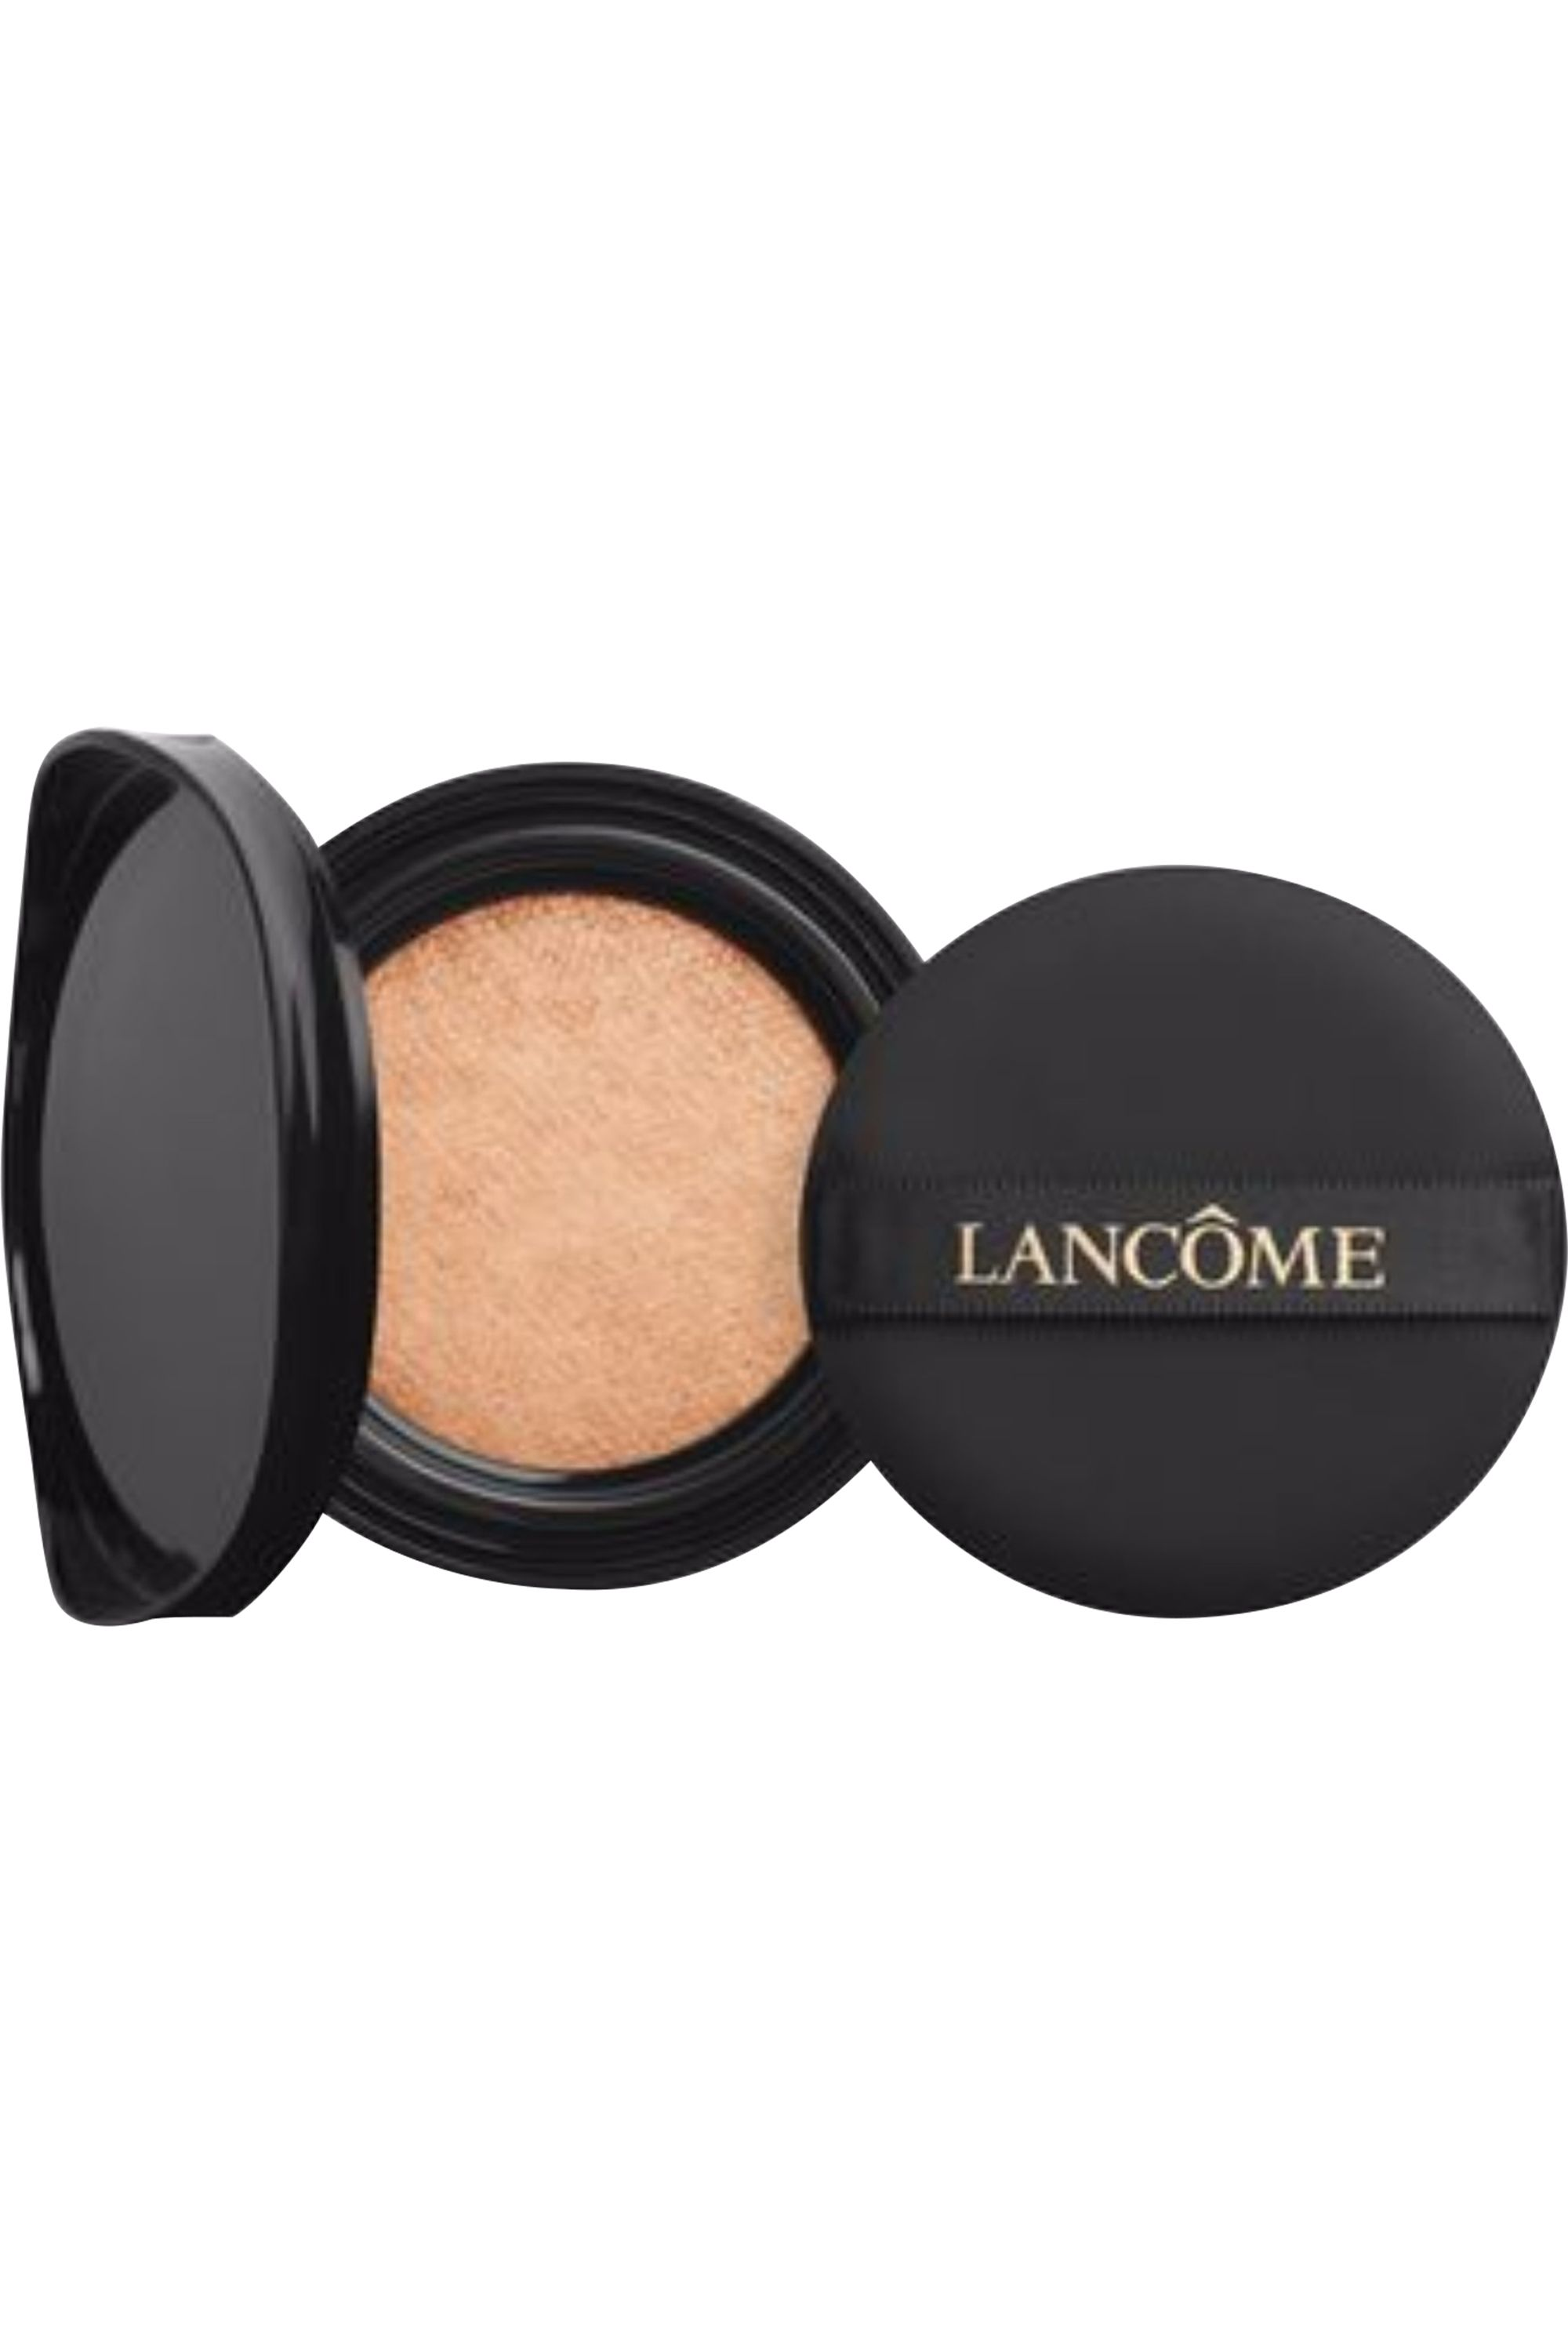 Blissim : Lancôme - Teint Idole Ultra Cushion - 01 Pure Porcelaine Recharge